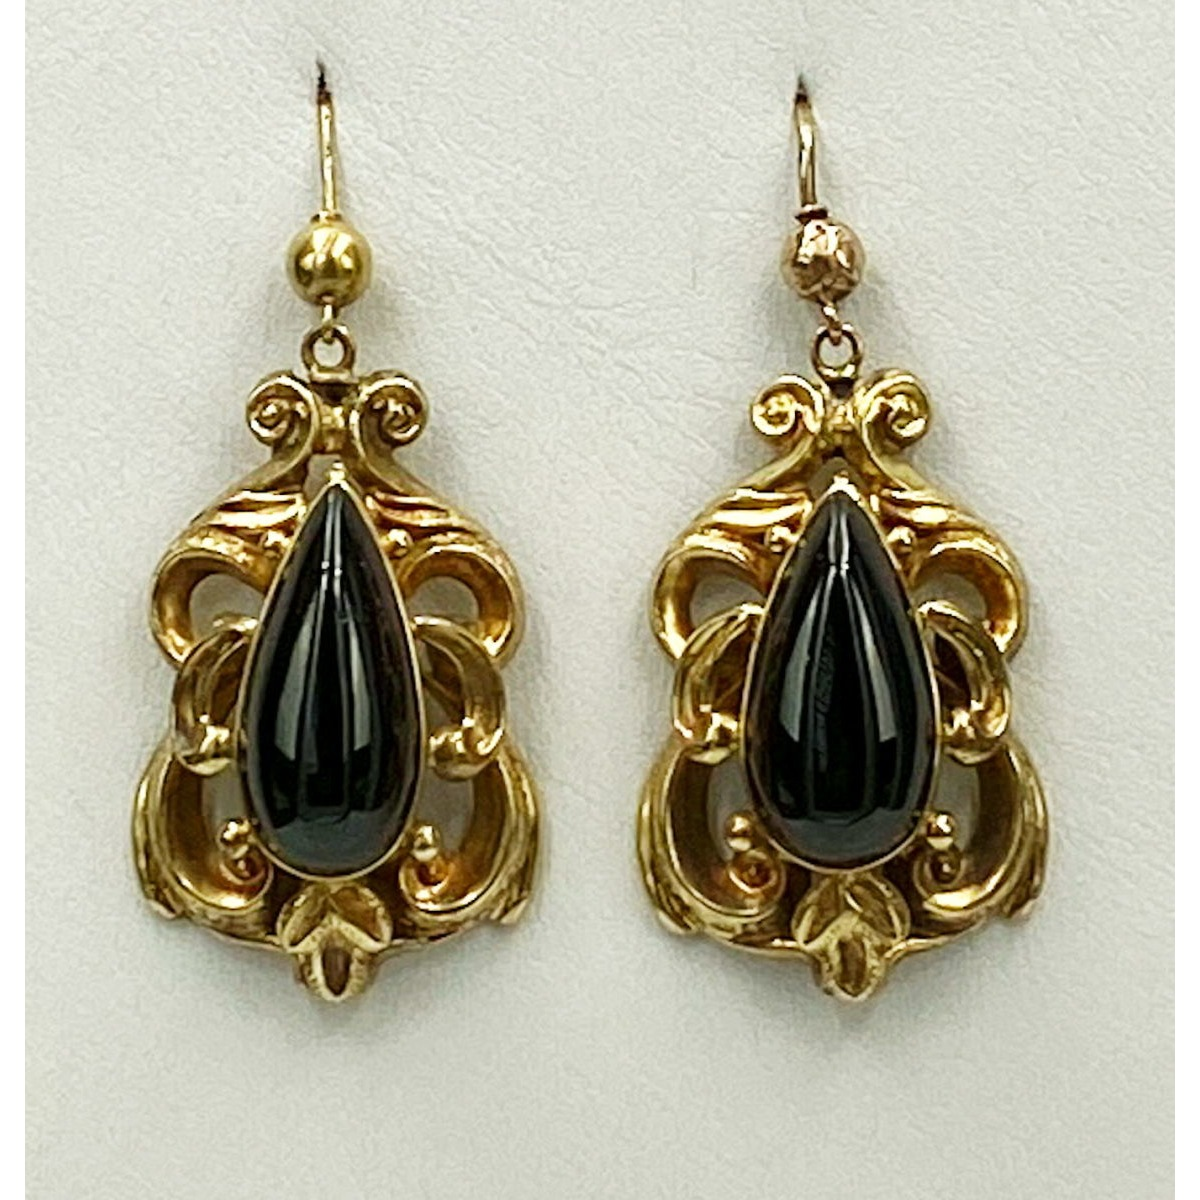 Bold 15kt Gold Antique English Earrings with Large Teardrop Garnets